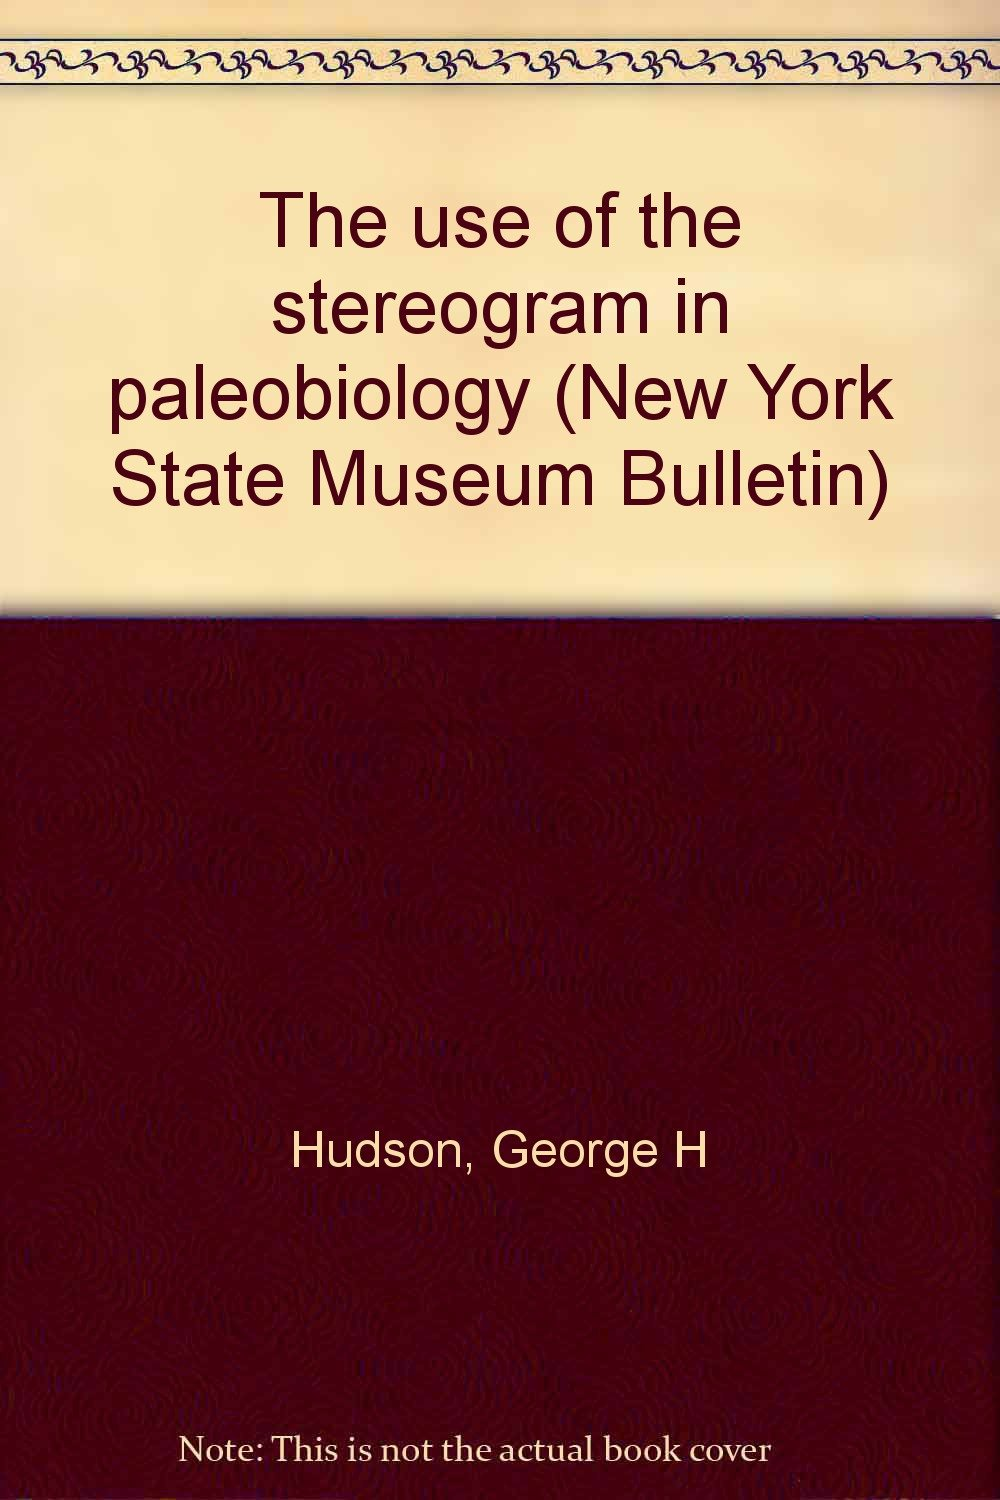 The use of the stereogram in paleobiology (New York State Museum Bulletin)